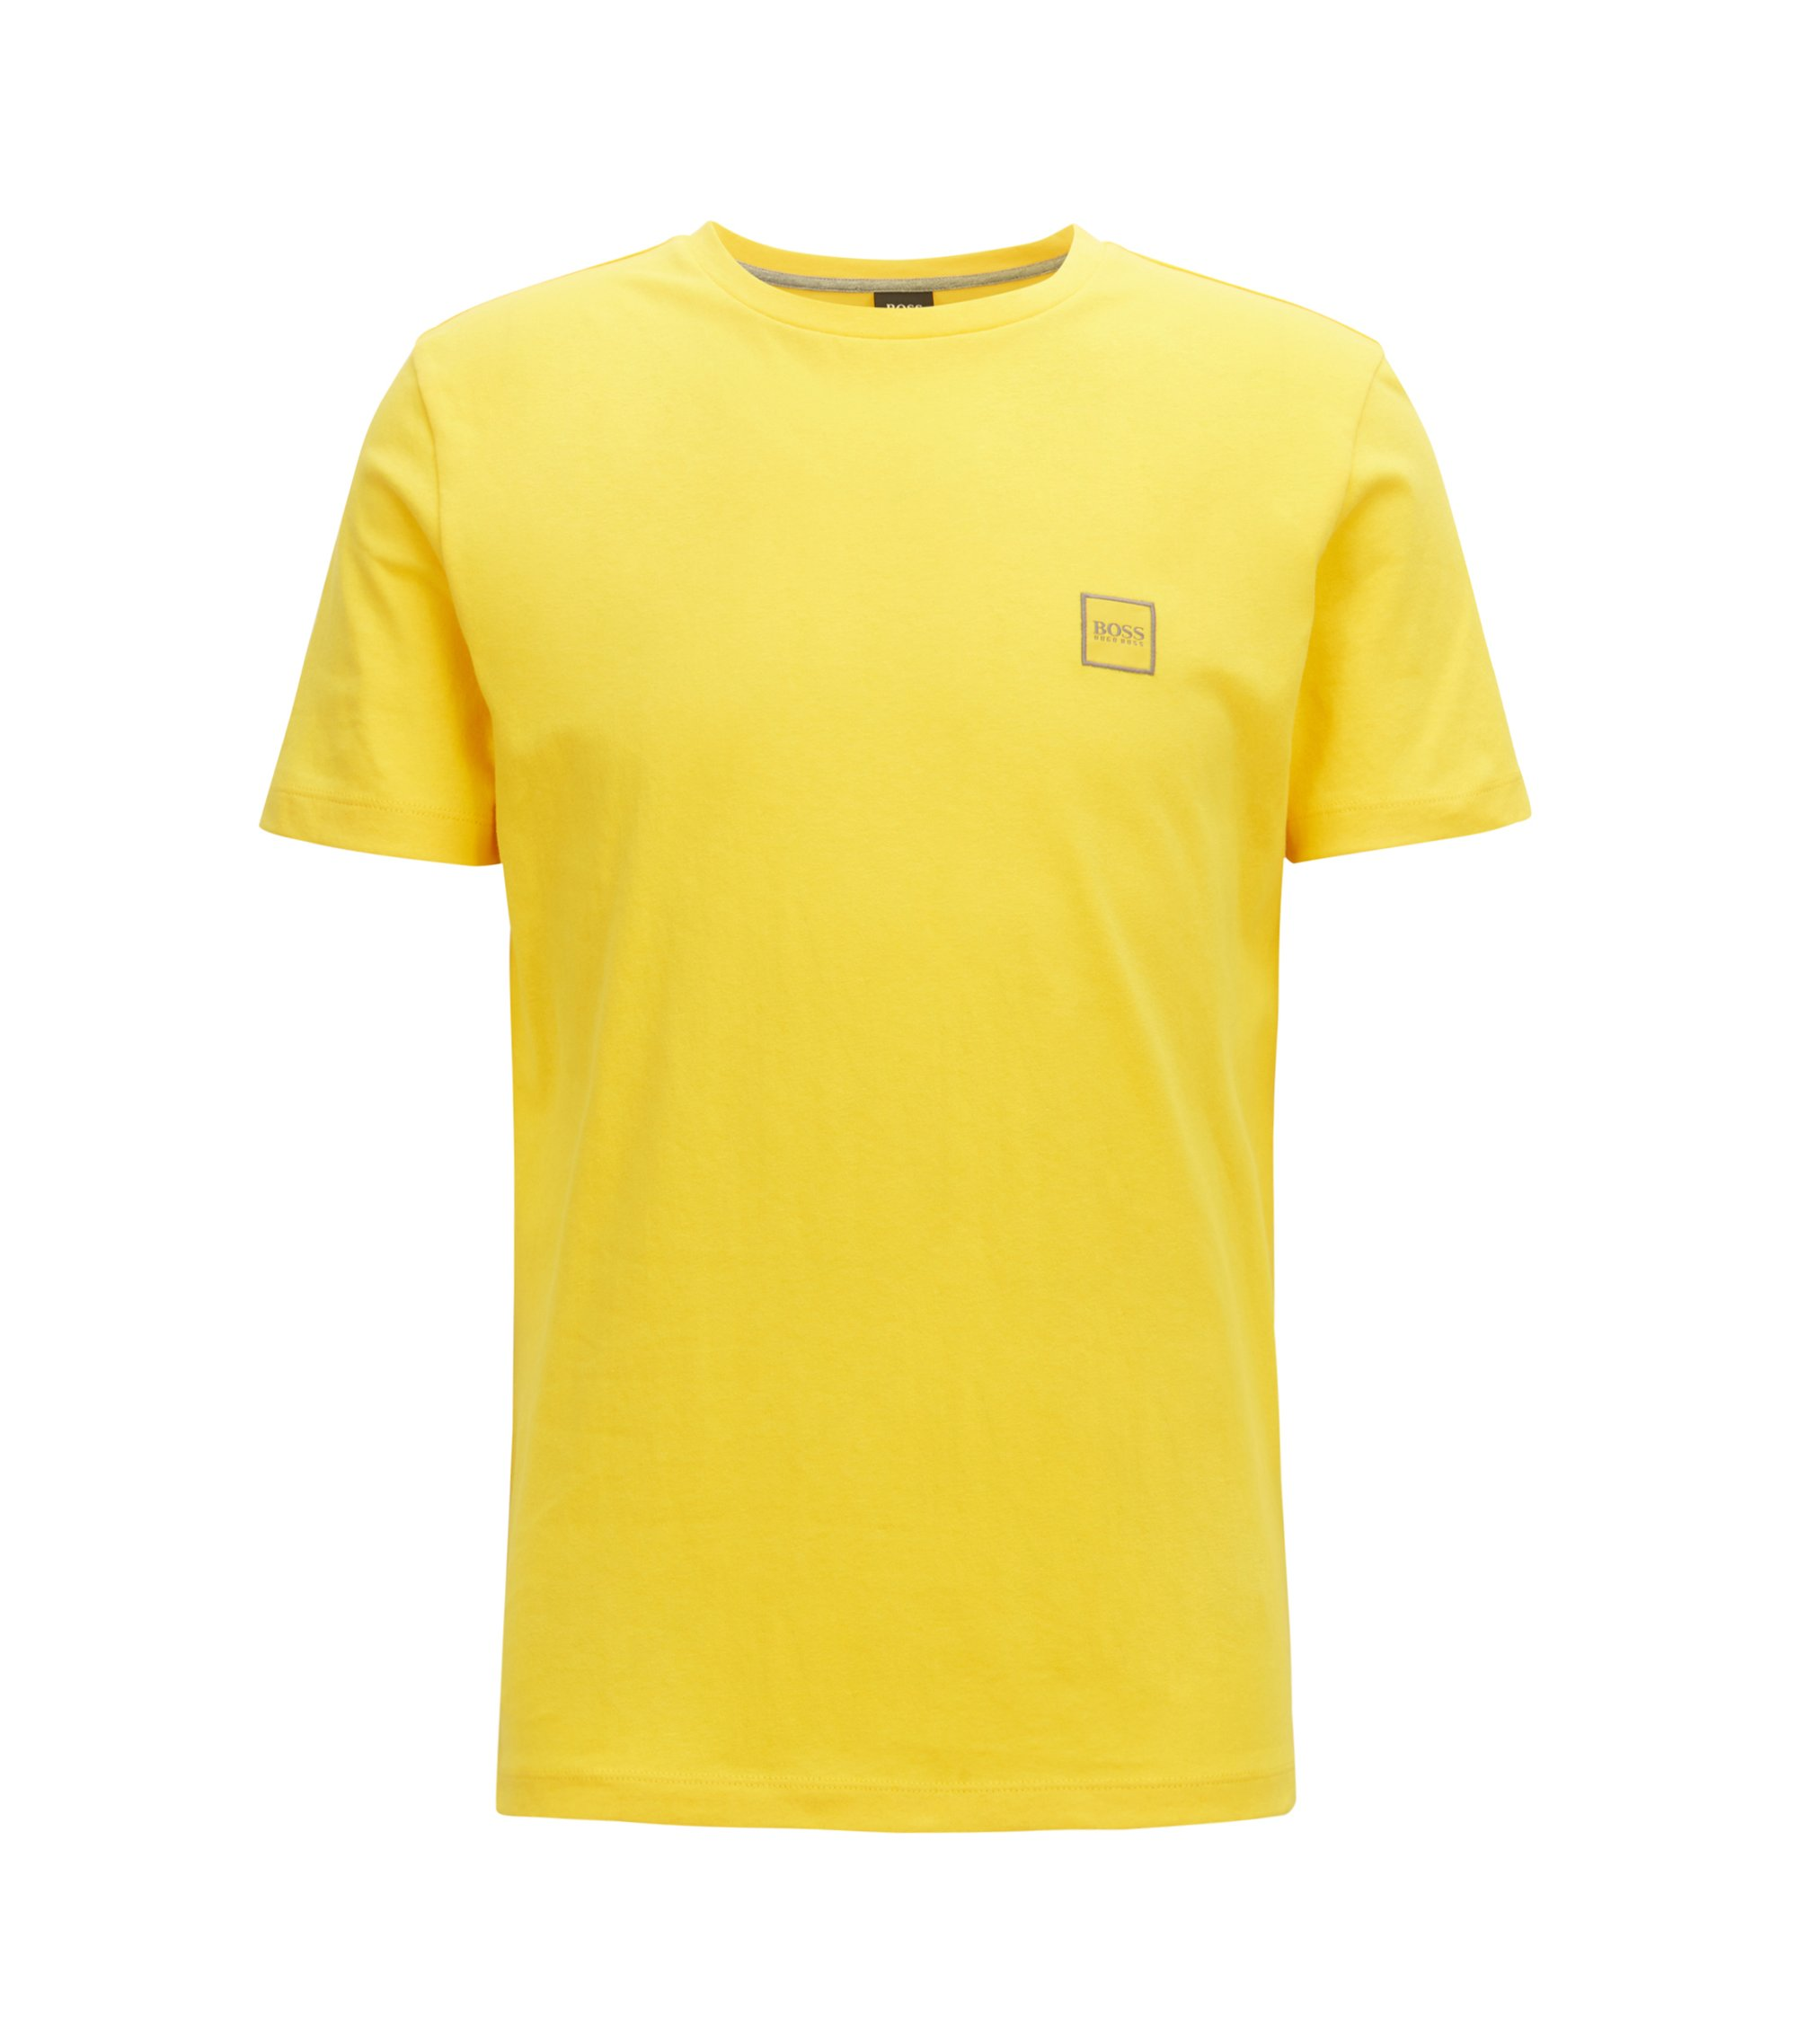 Crew-neck T-shirt in single-jersey cotton, Yellow